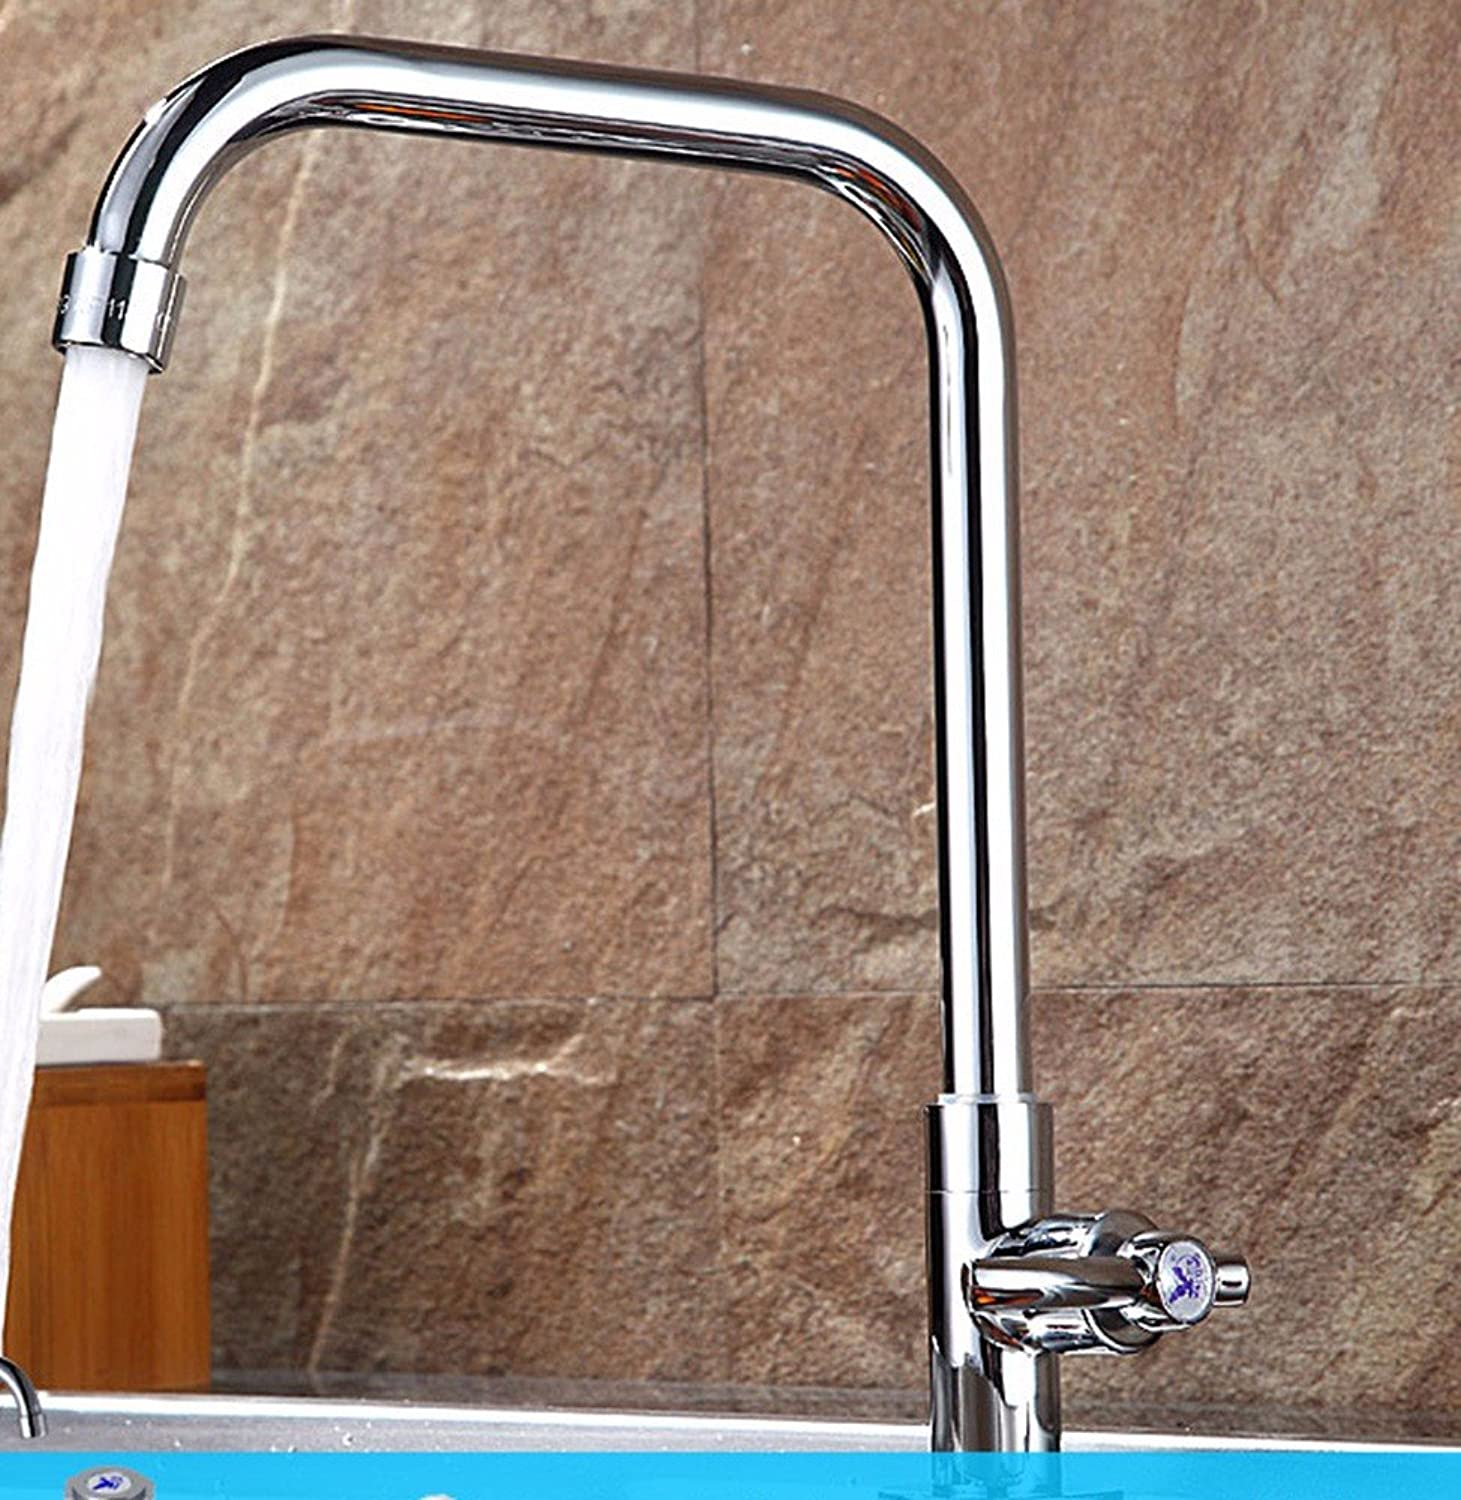 Hlluya Professional Sink Mixer Tap Kitchen Faucet Stainless Steel, single cold, into the wall, washing dishes, laundry, balcony, sink and faucet